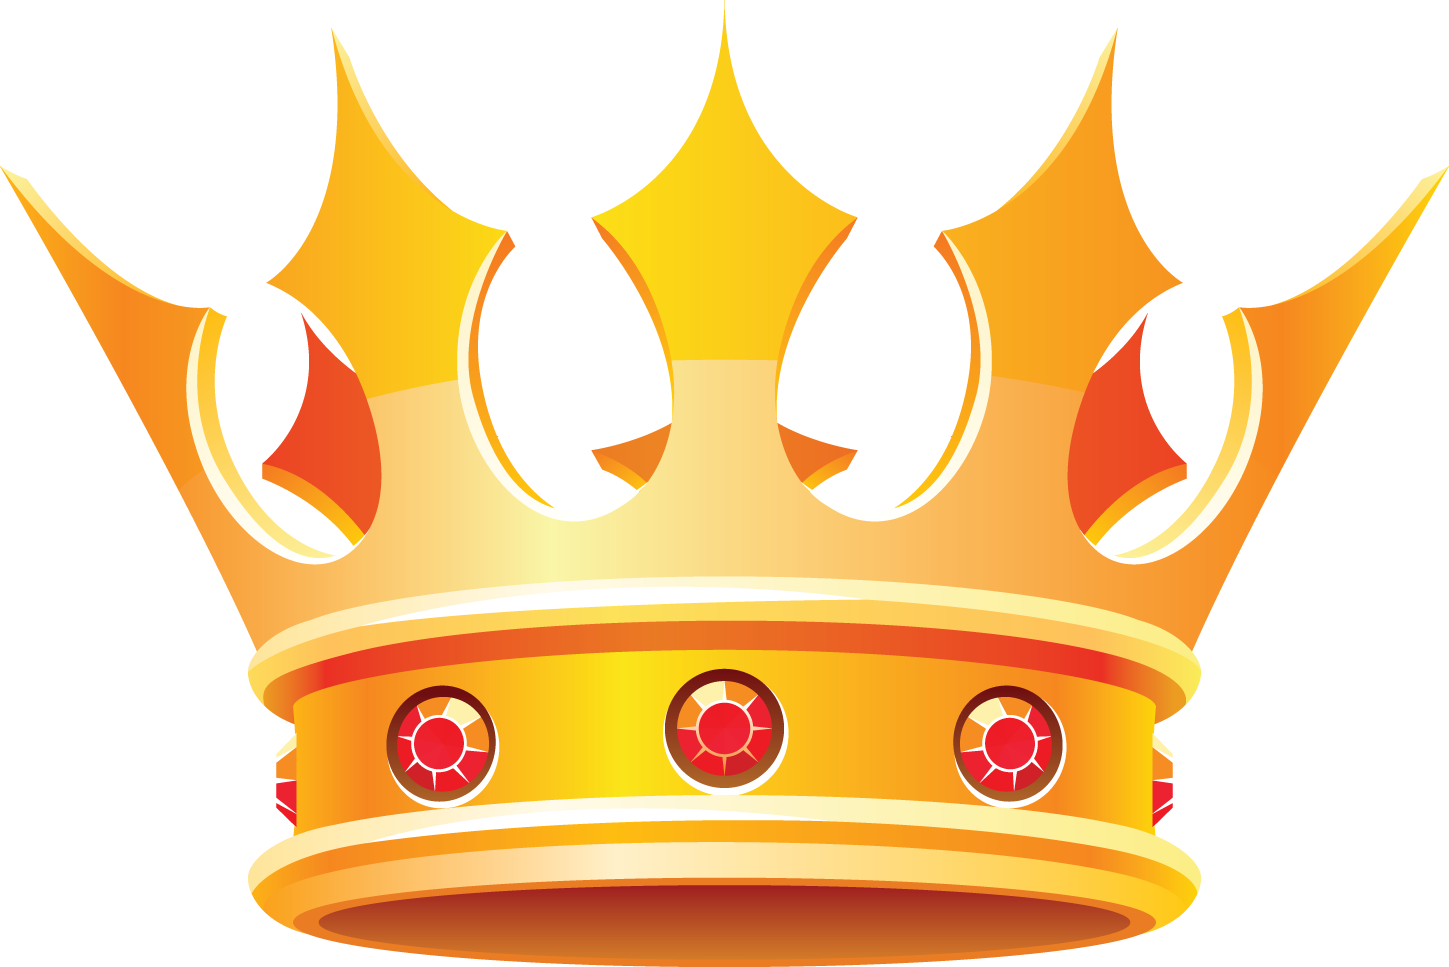 Crown for king clipart svg freeuse stock Queen Crown Clipart at GetDrawings.com | Free for personal use Queen ... svg freeuse stock